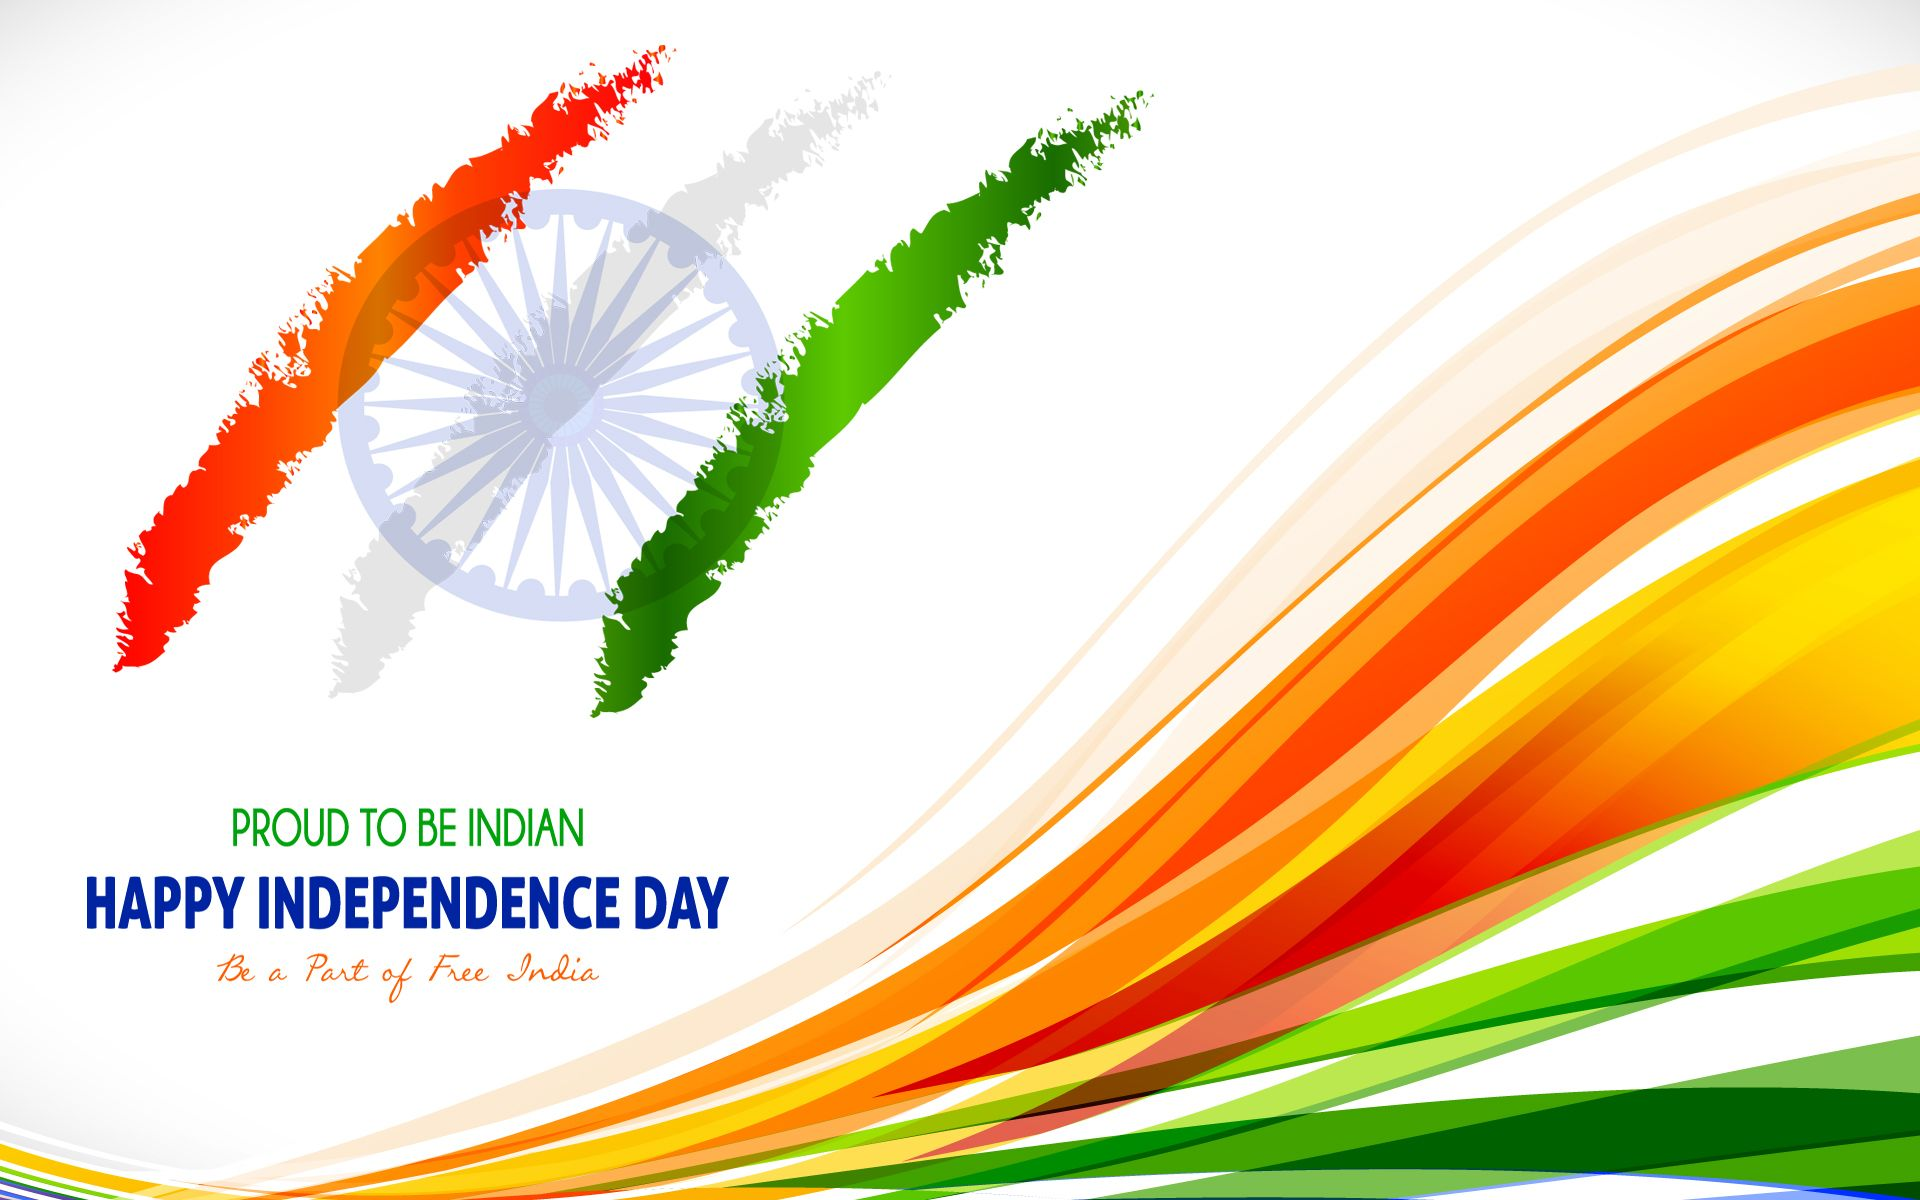 Download 100 Pure Independence Day HD Wallpapers Latest 1920x1200